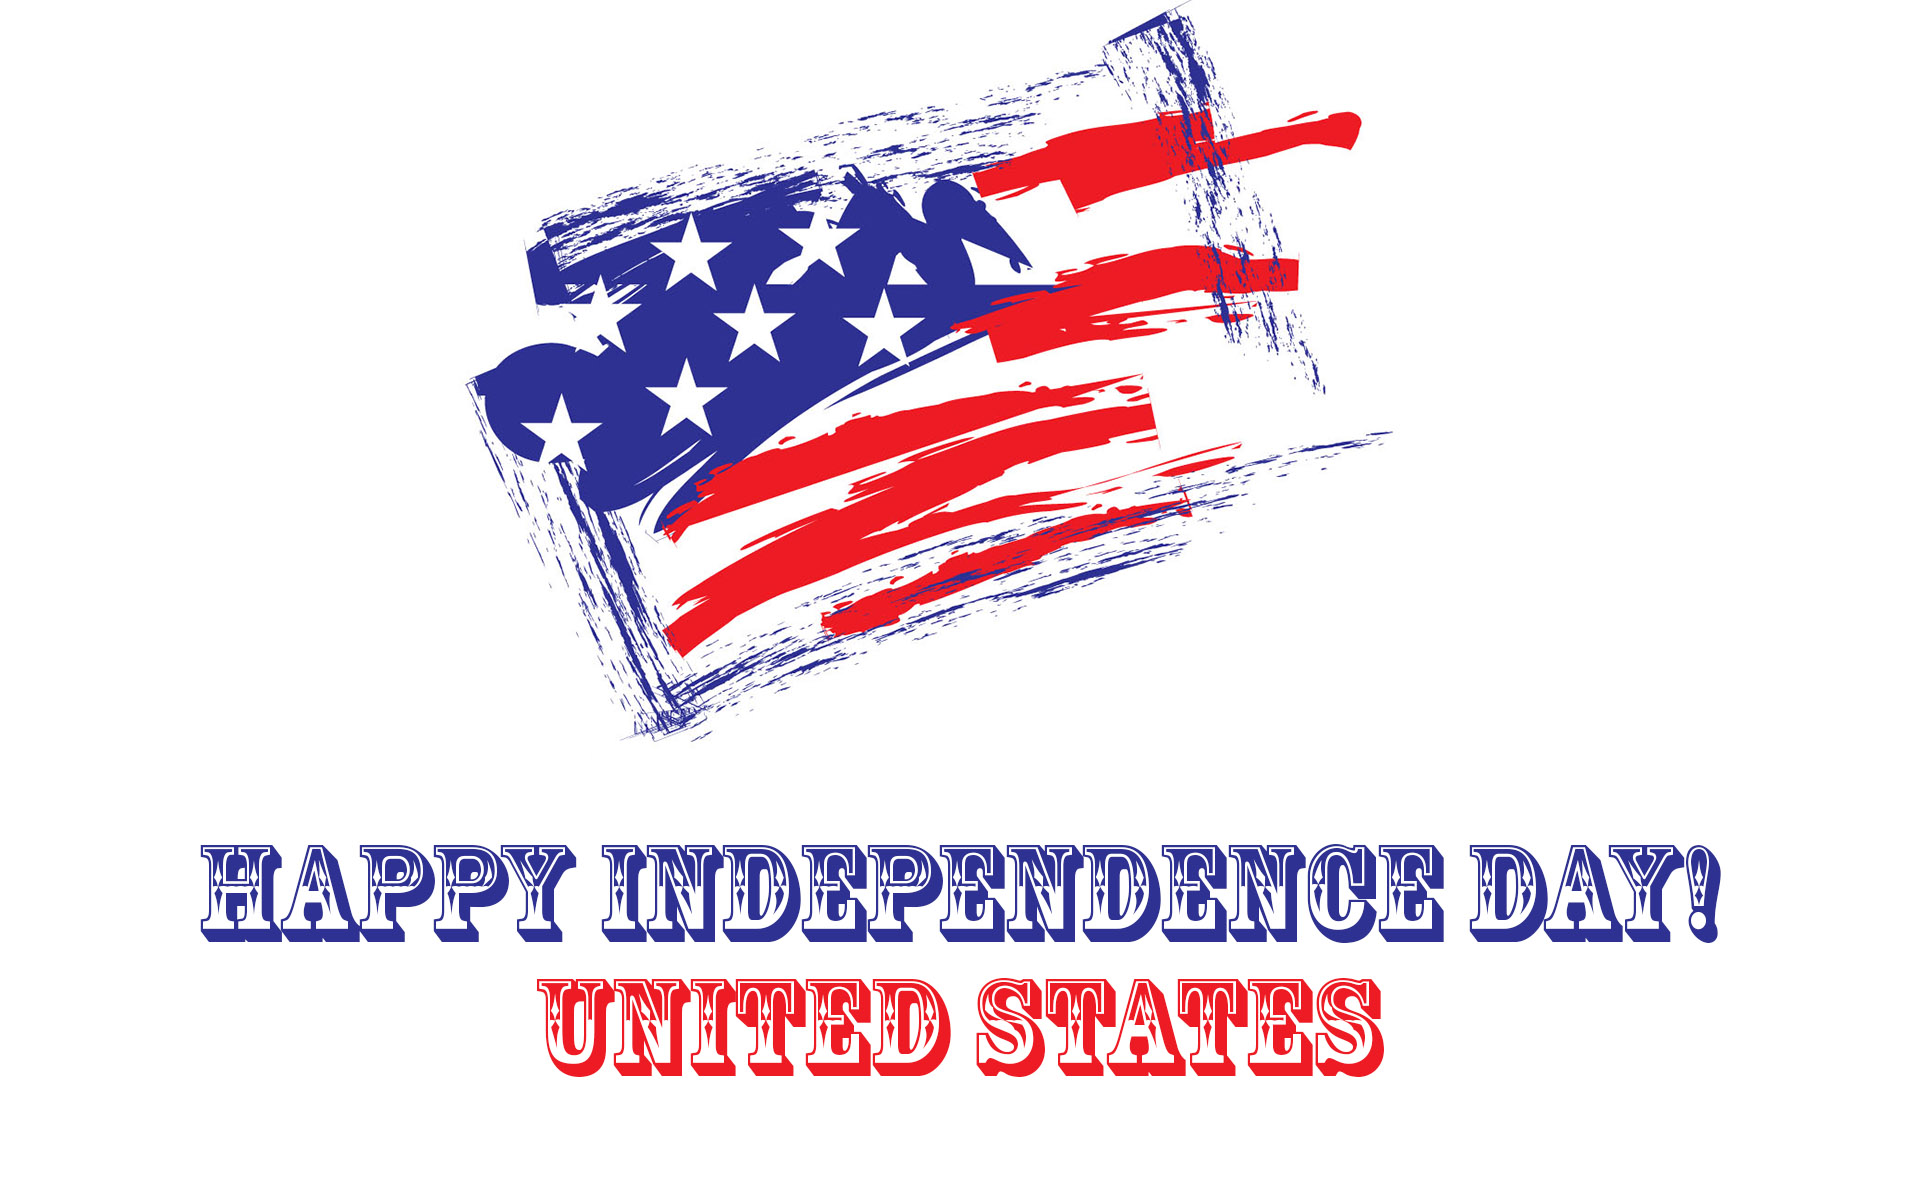 4th July 2015 Independence Day USA Greetings Wishes Images.